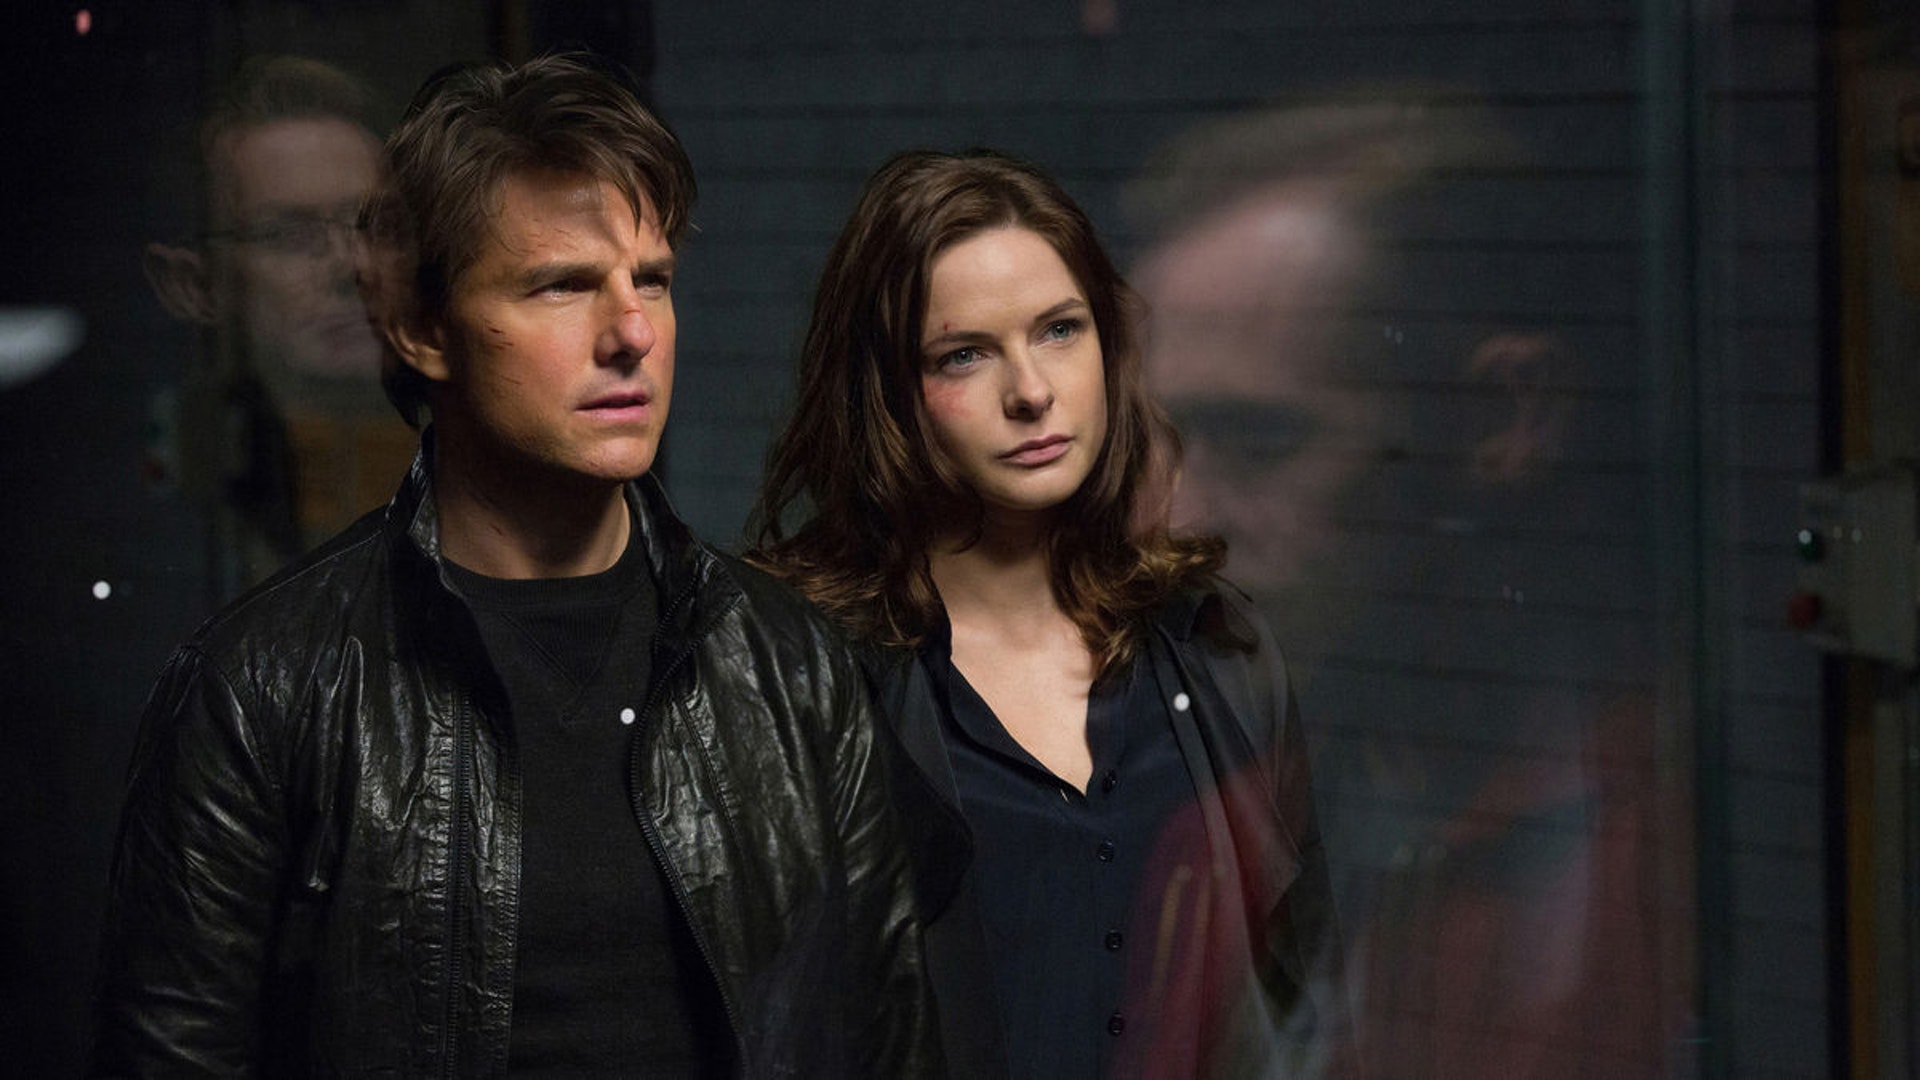 mission-impossible-rogue-nation-1200-1200-675-675-crop-000000